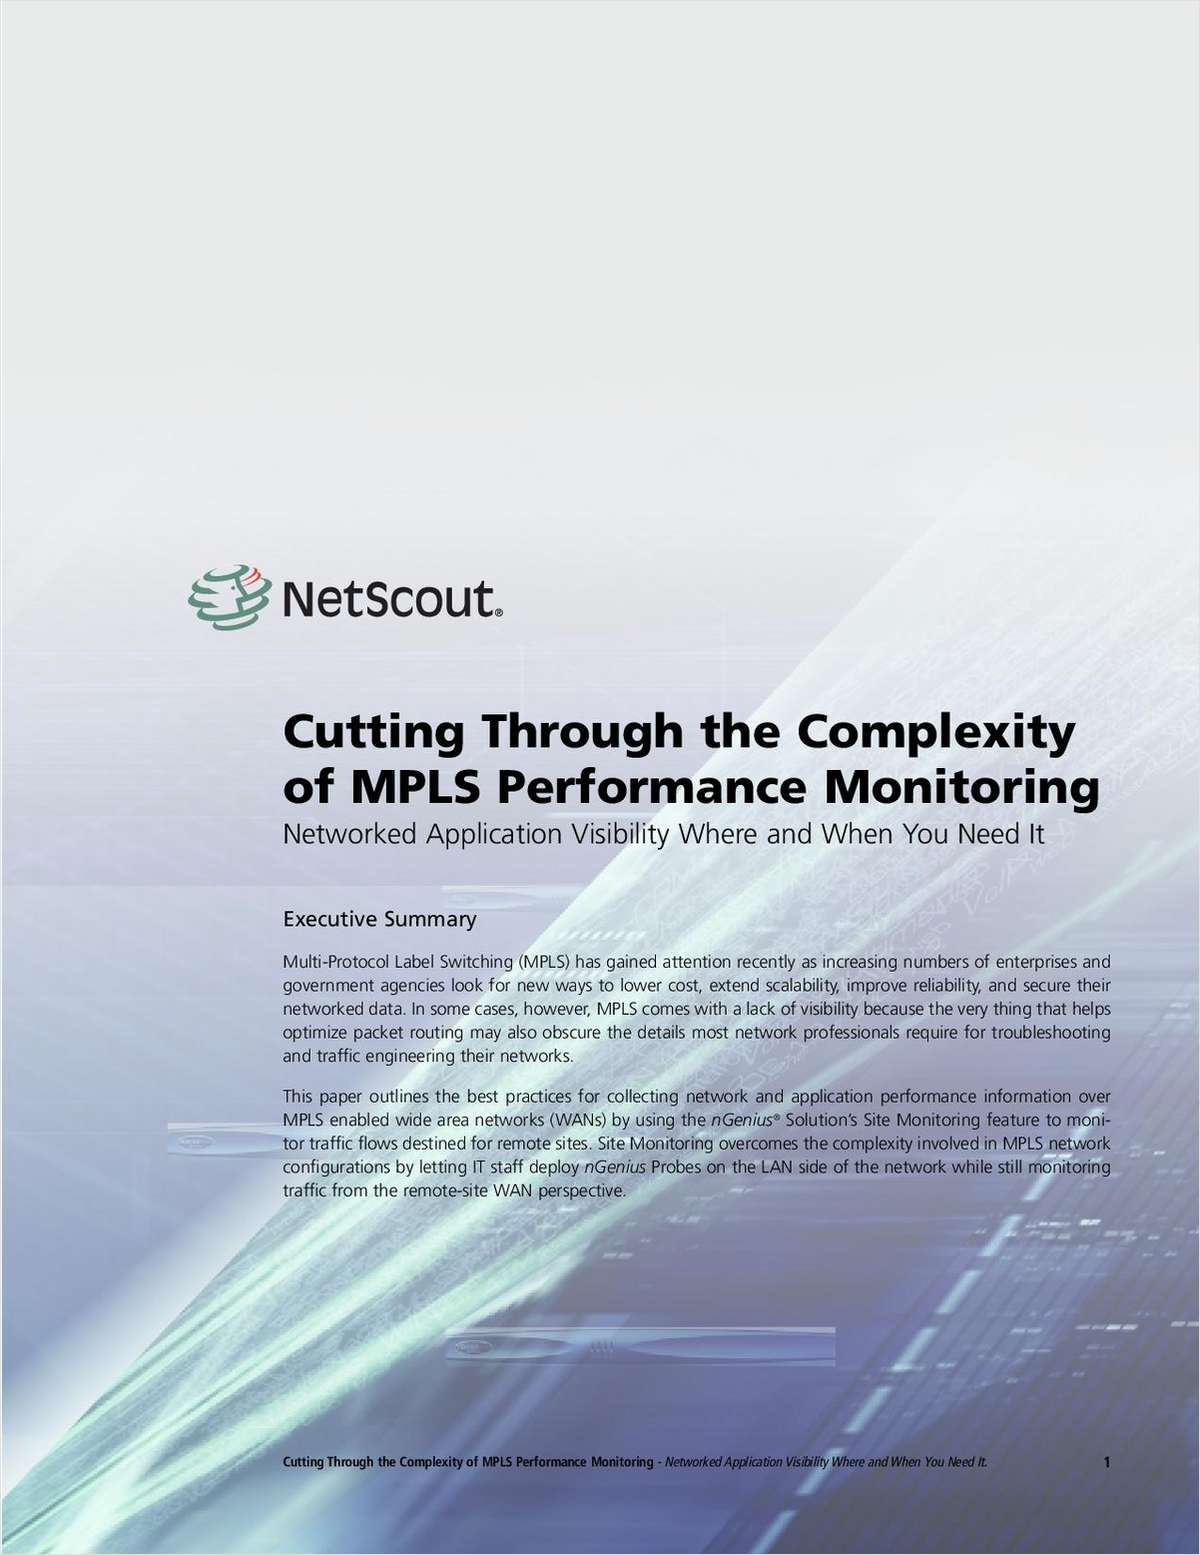 Cutting Through the Complexity of Multi-Protocol Label Switching (MPLS) Performance